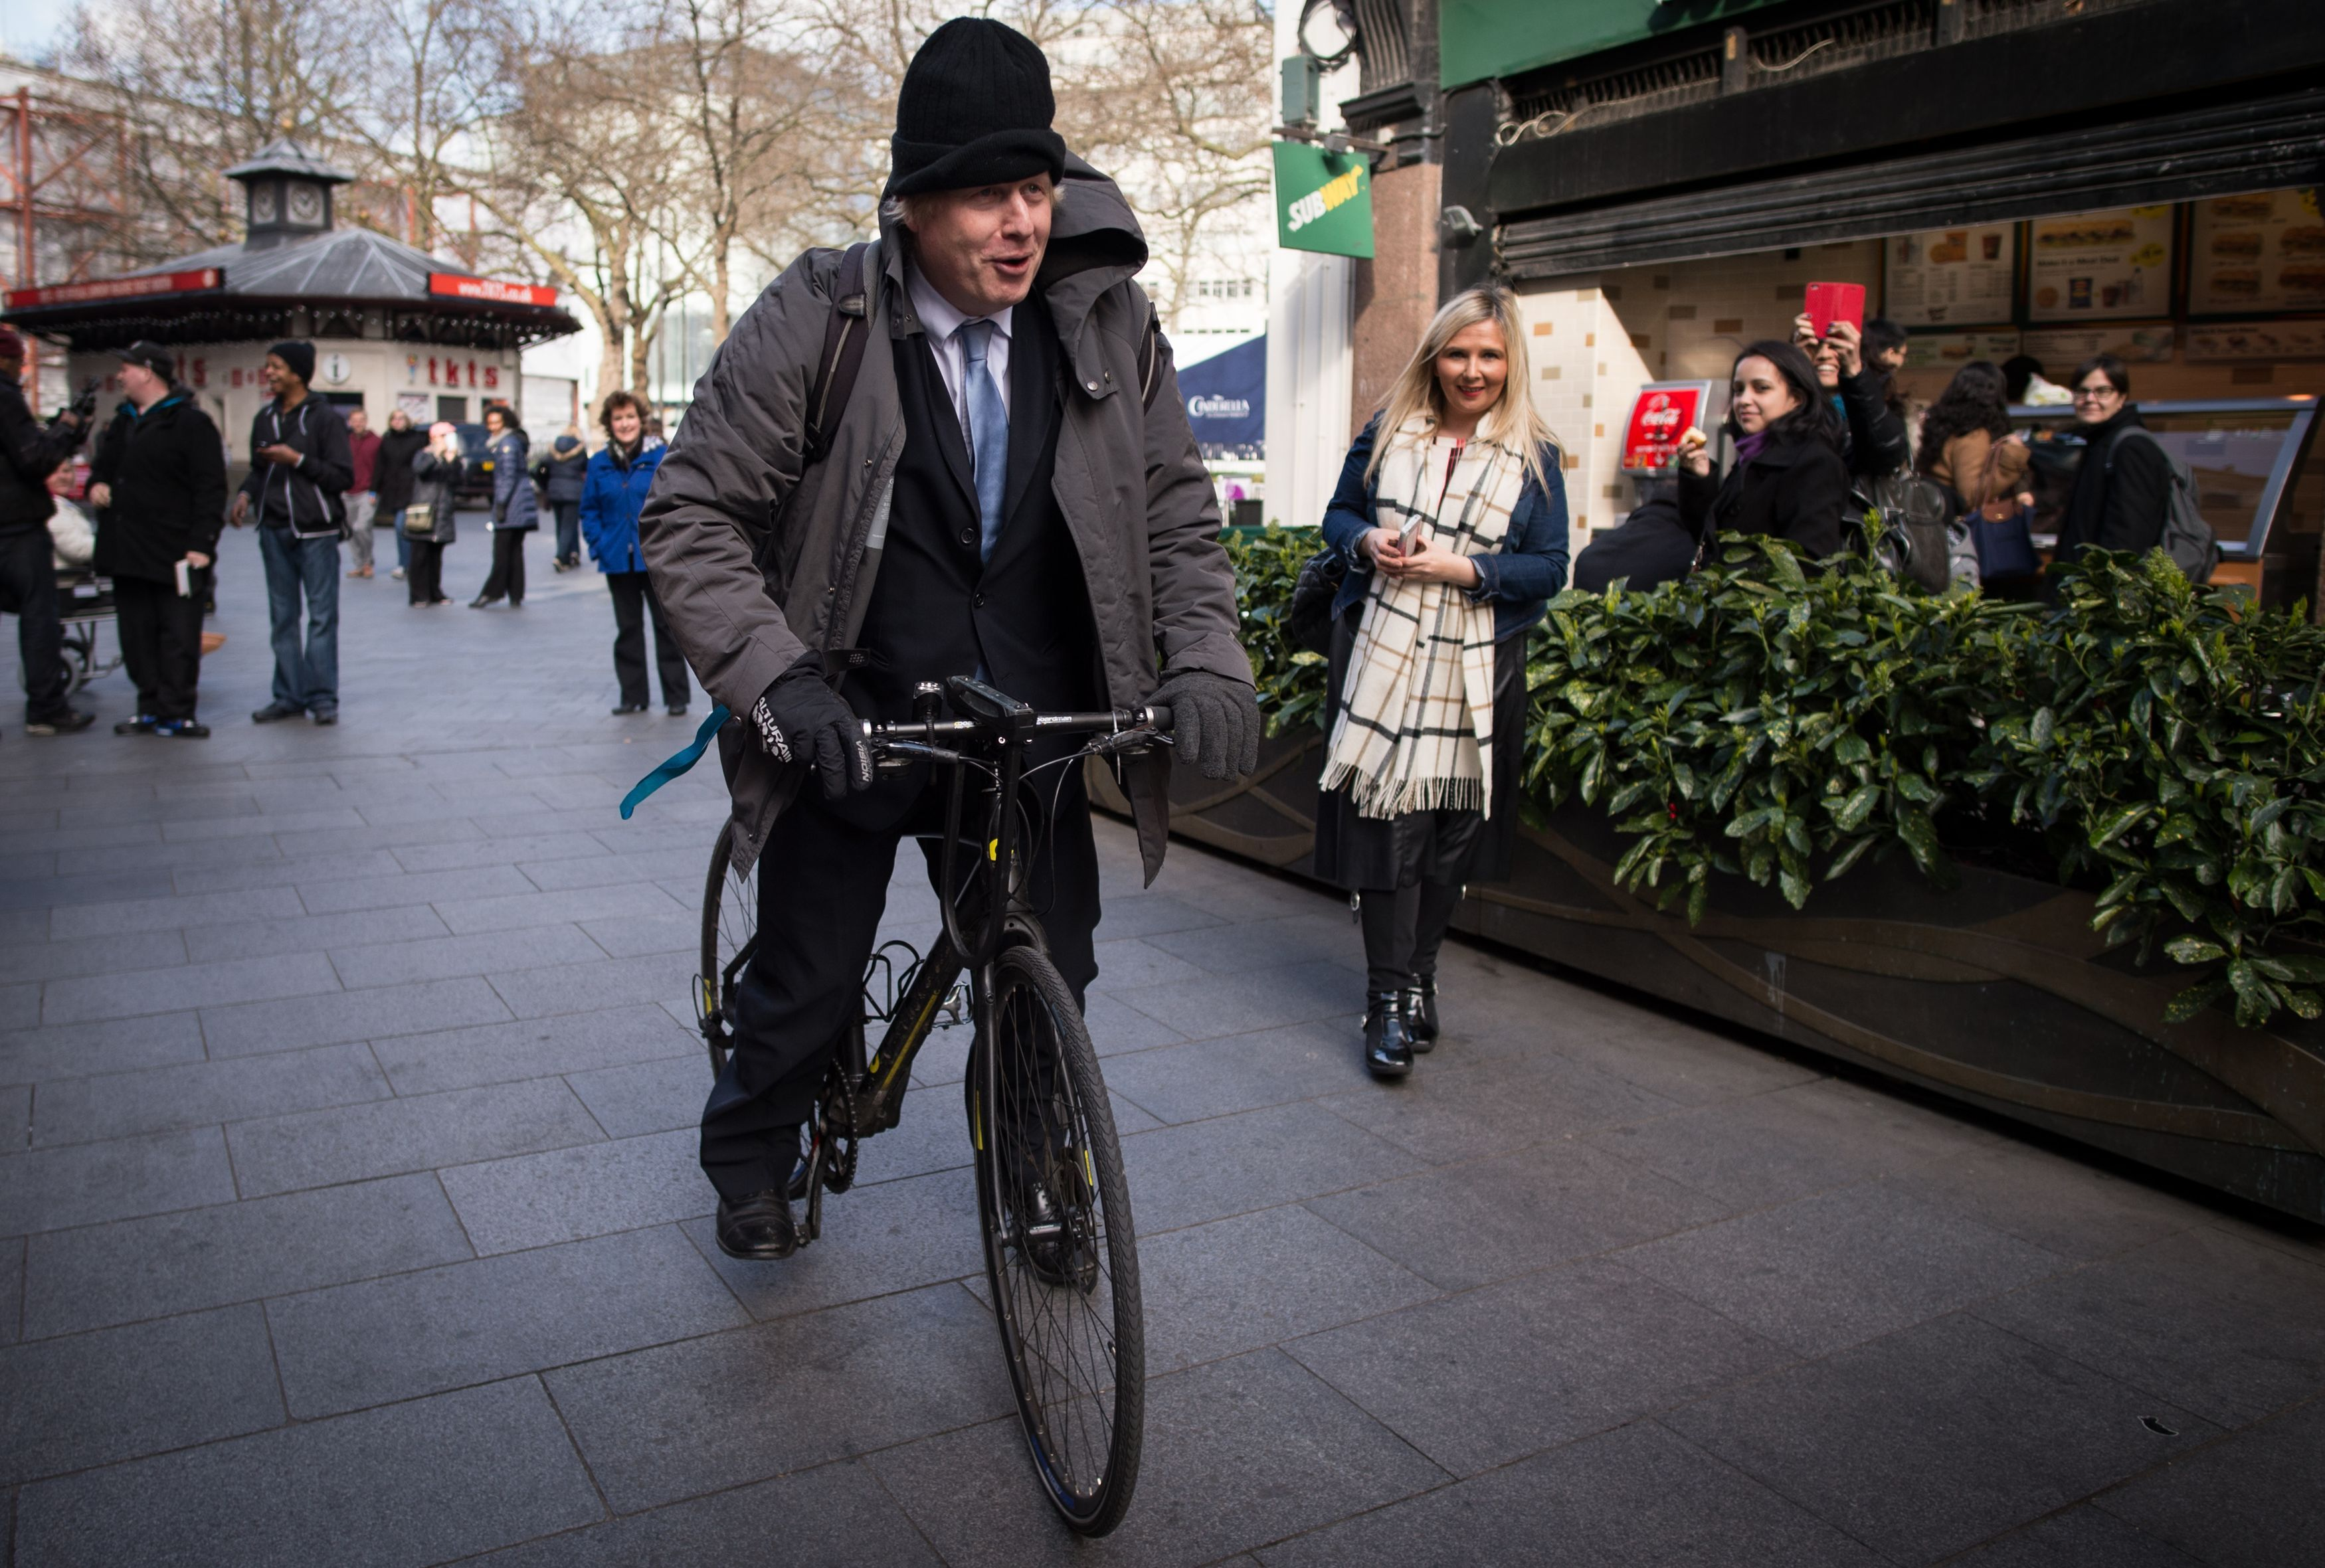 Mayor of London Boris Johnson on his bicycle as he leaves Global Radio studios in central London after presenting his regularly phone-in show for LBC radio following David Cameron comments that he is ruling out a third term as Prime Minister.